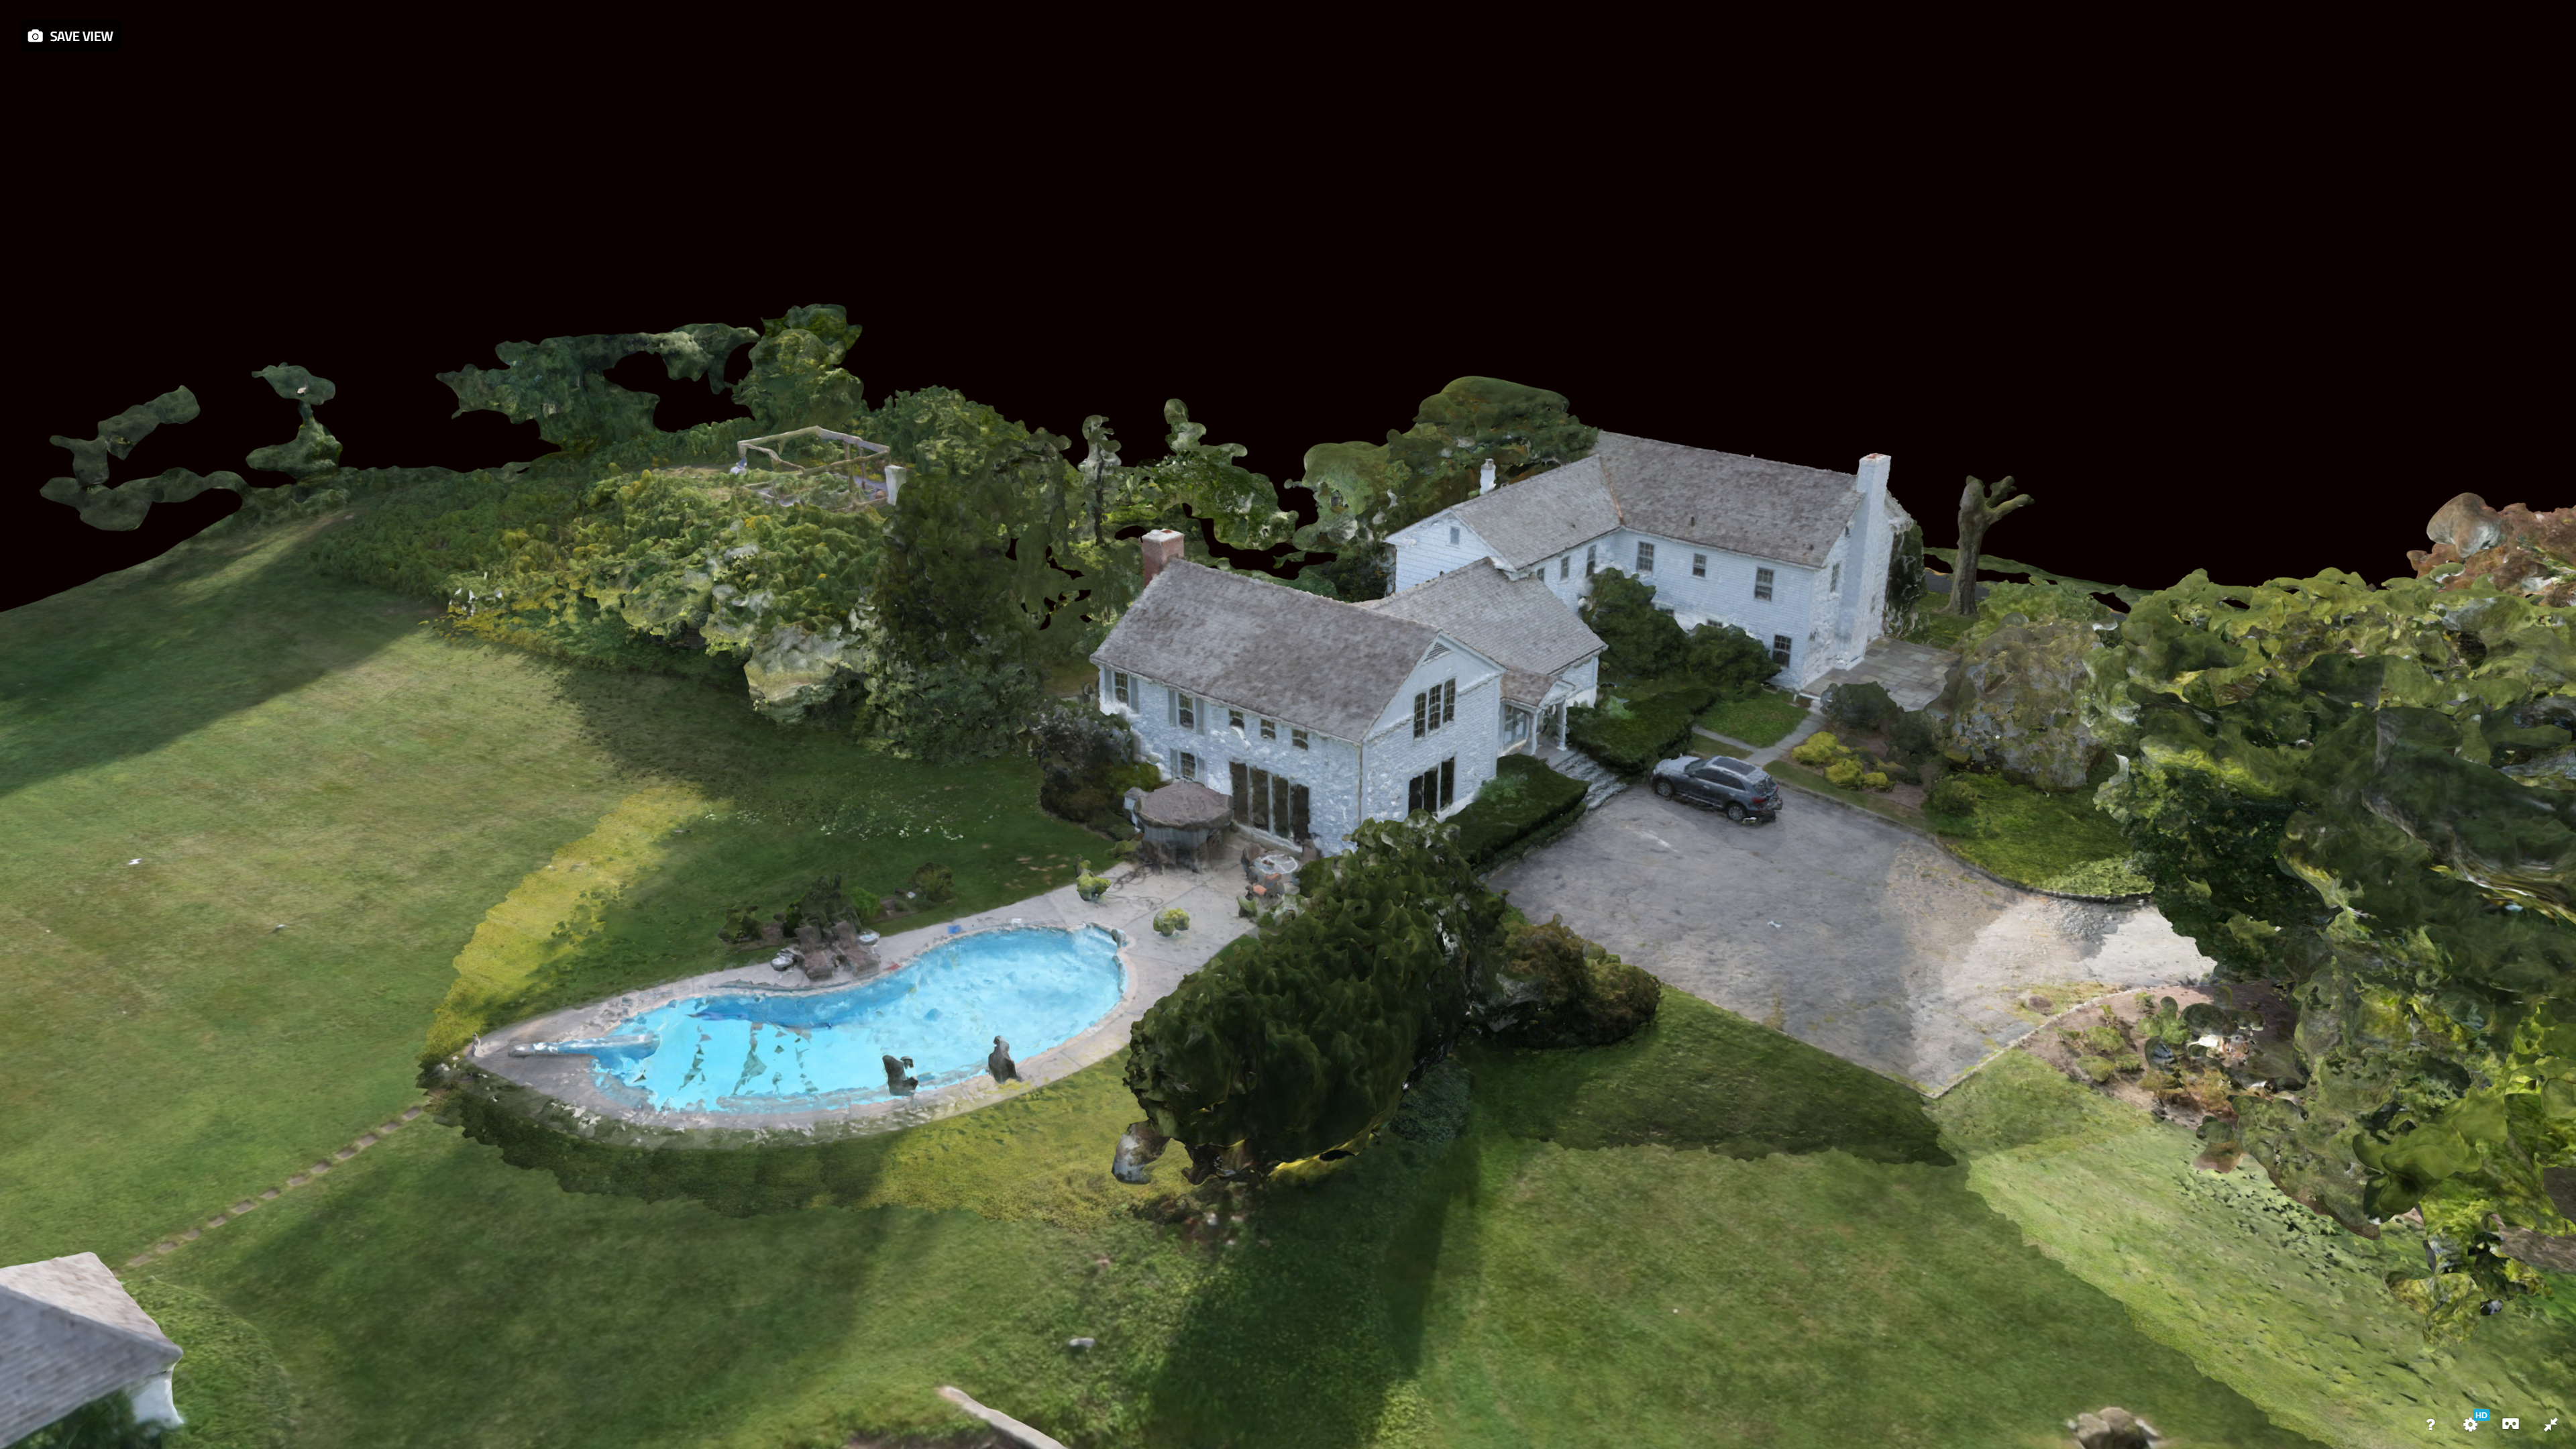 3d Model of Home and Property